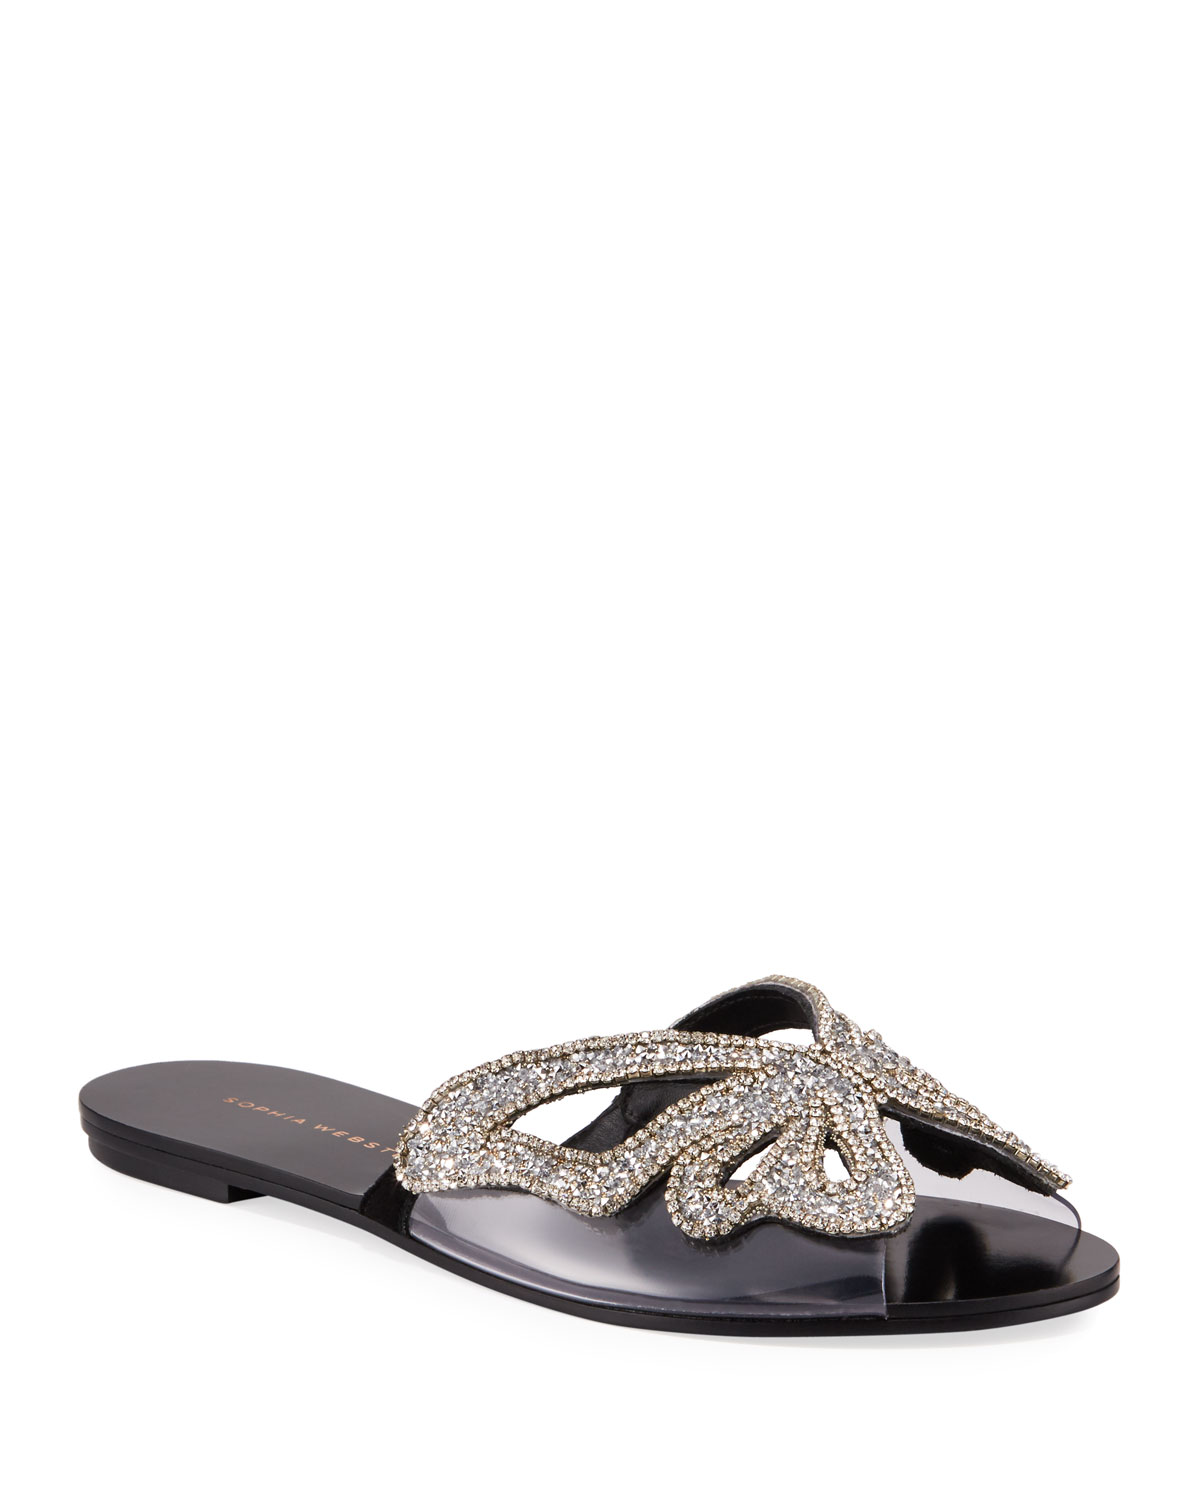 Sophia Webster Women's Madame Crystal-embellished Slide Sandals In Black